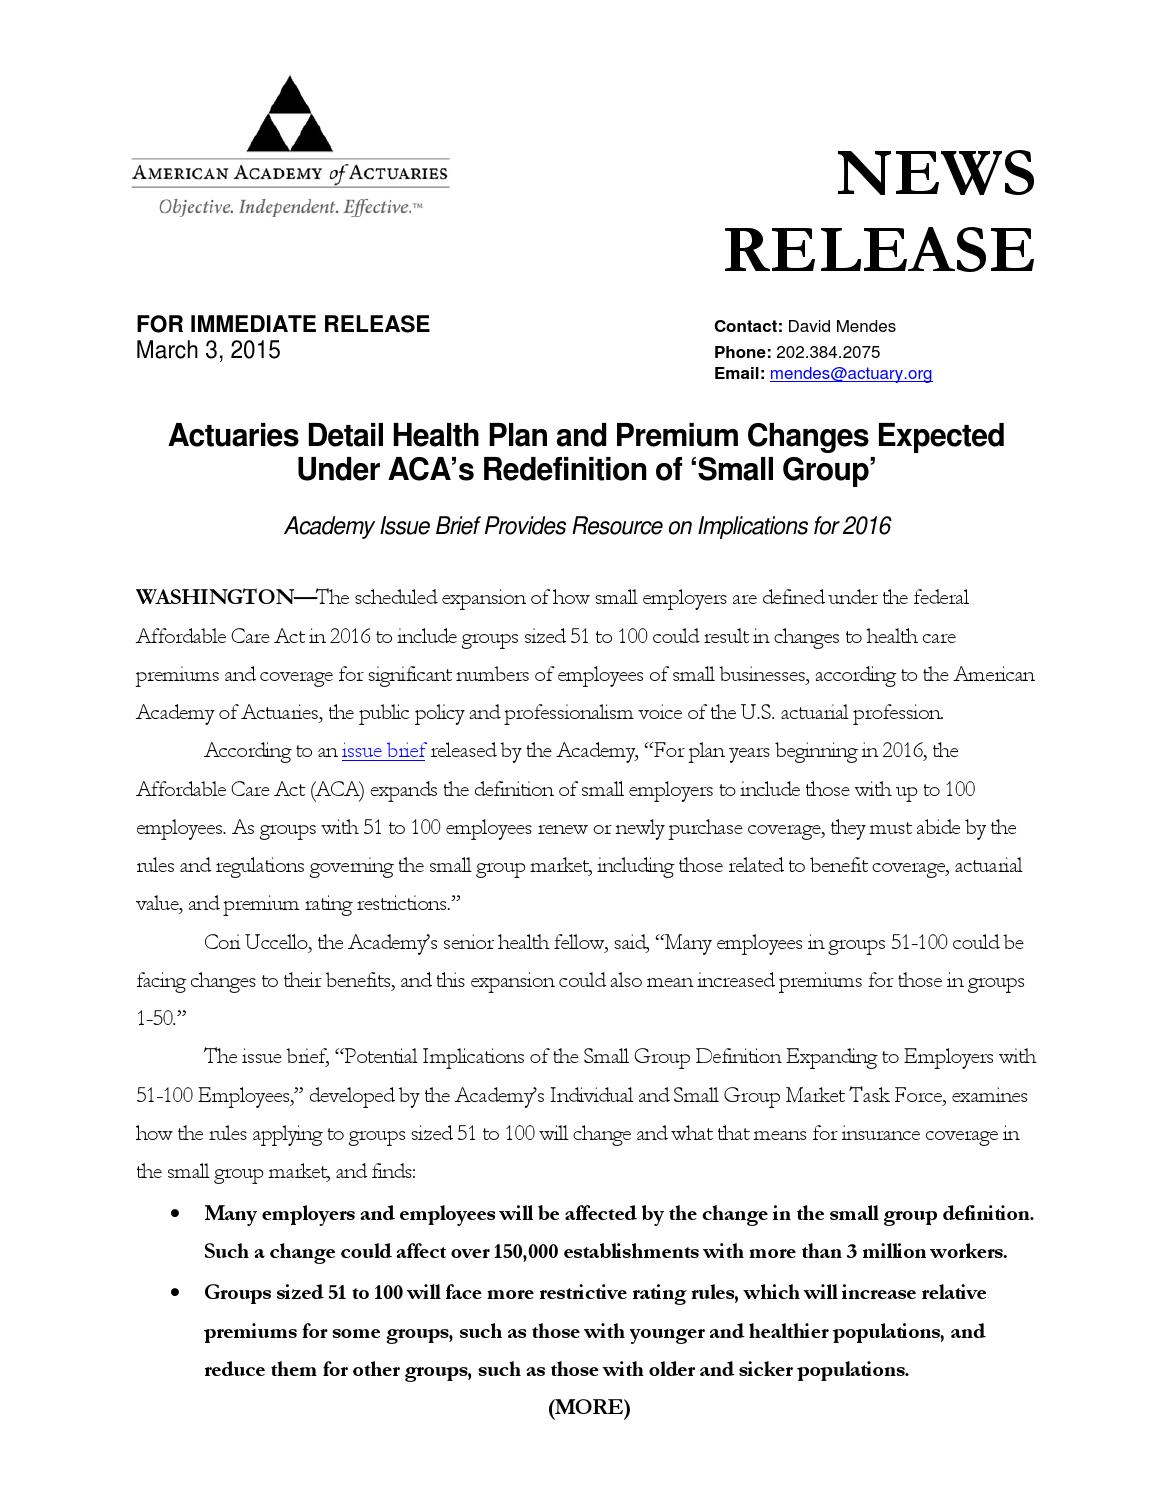 Actuaries detail health plan and premium changes expected ...